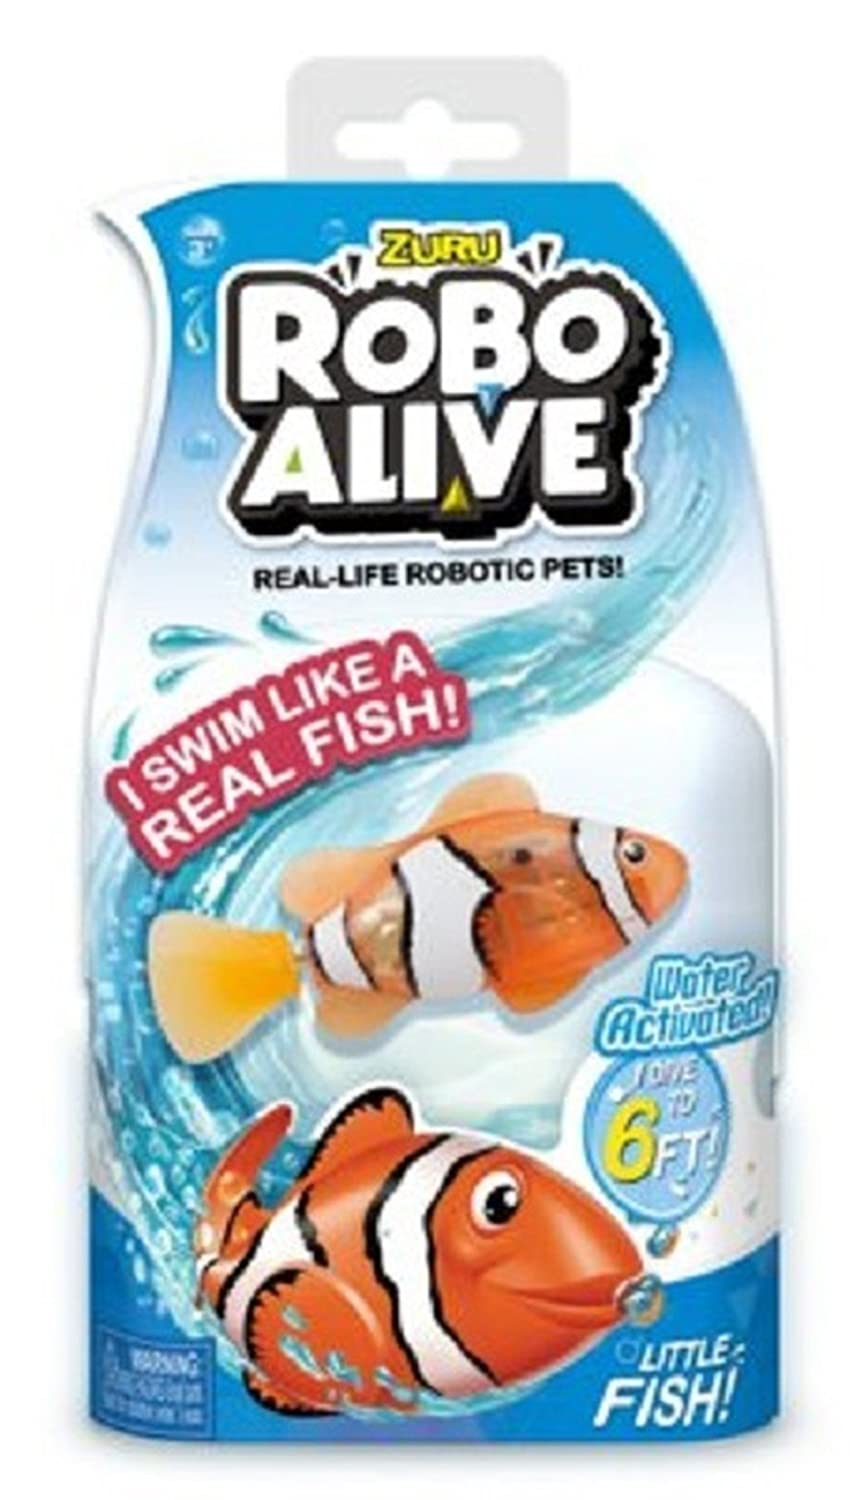 New Zuru Robo Alive Little Fish Collection Real-Life Robotic Pets Water Activated LITTLE CLOWNFISH Swims like a Real Fish an